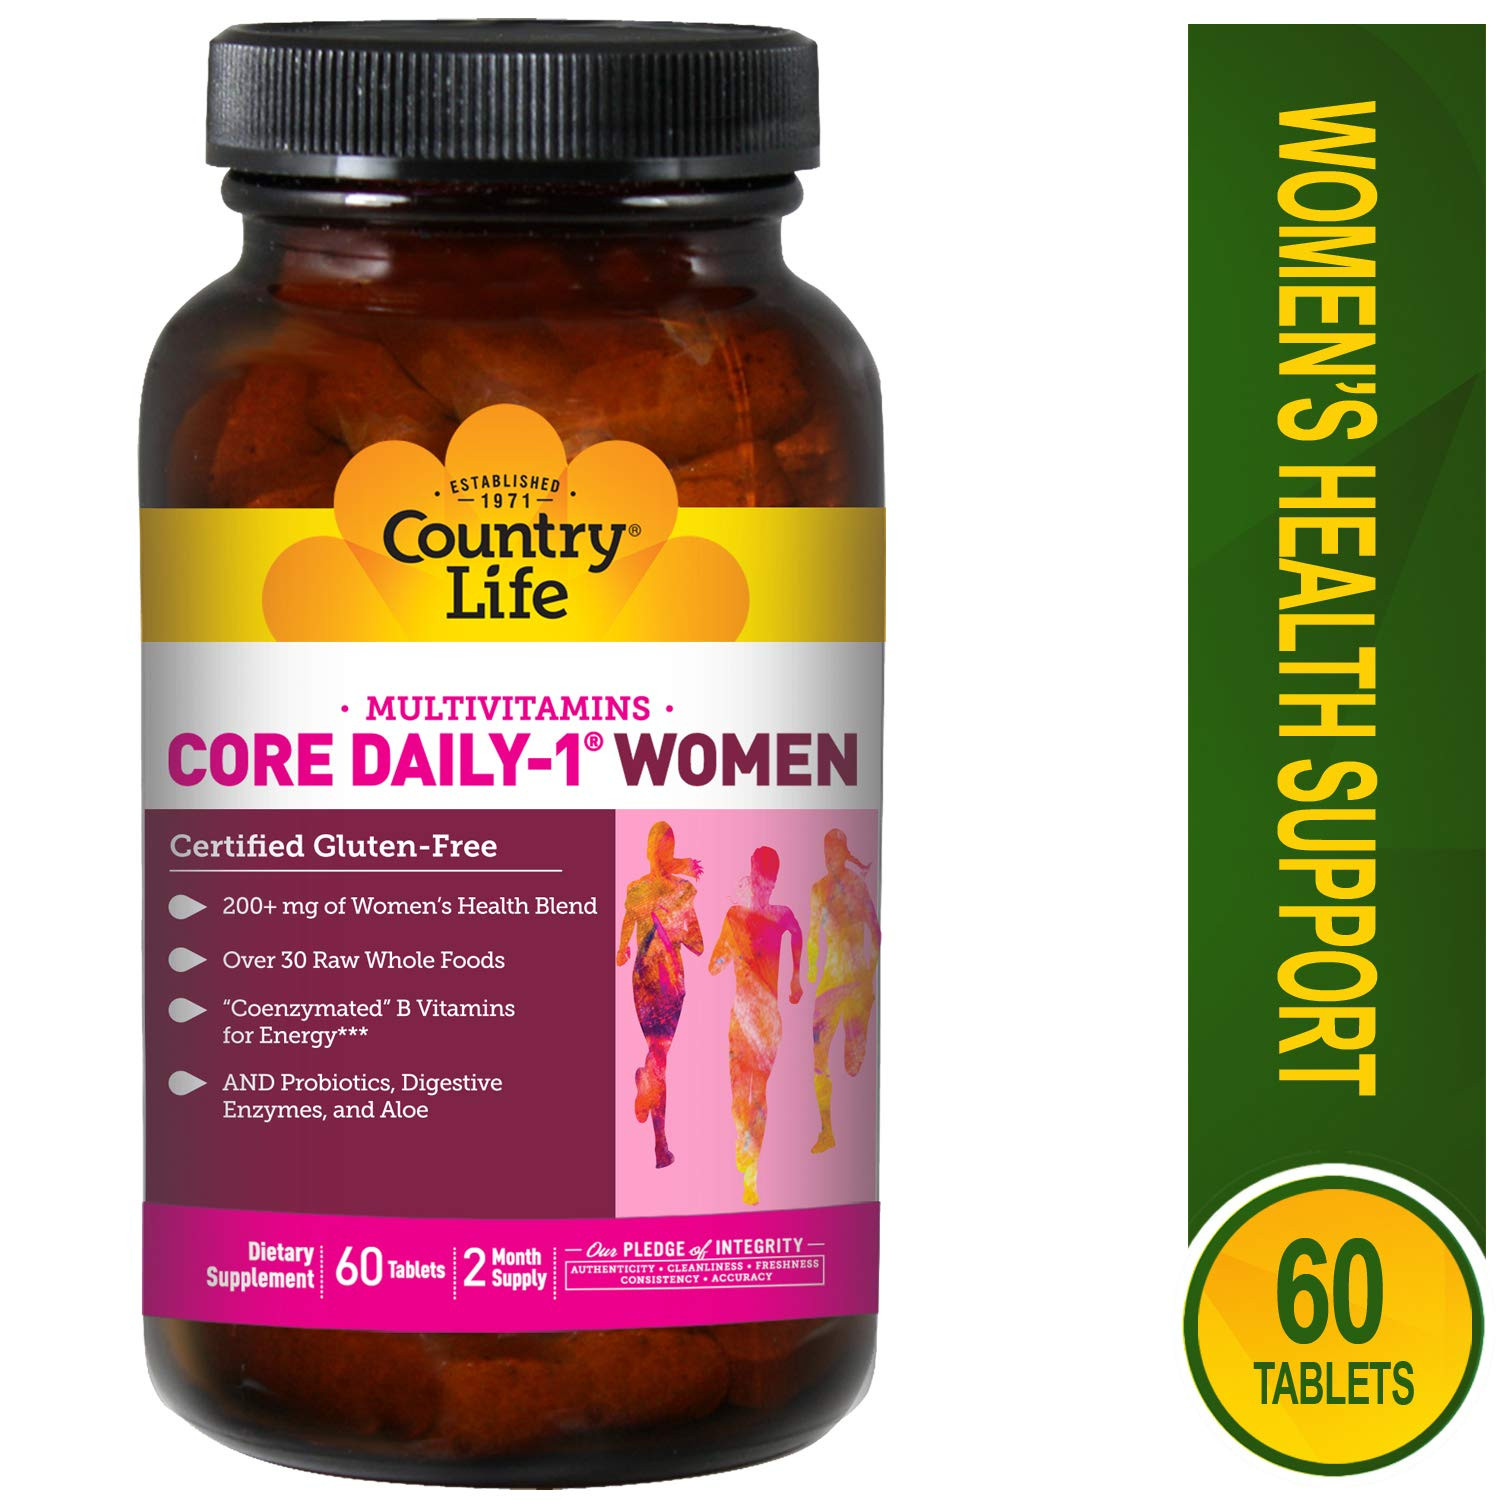 Country Life, Core Daily-1 Multivitamins, Women, 60 Tablets CLF-08192